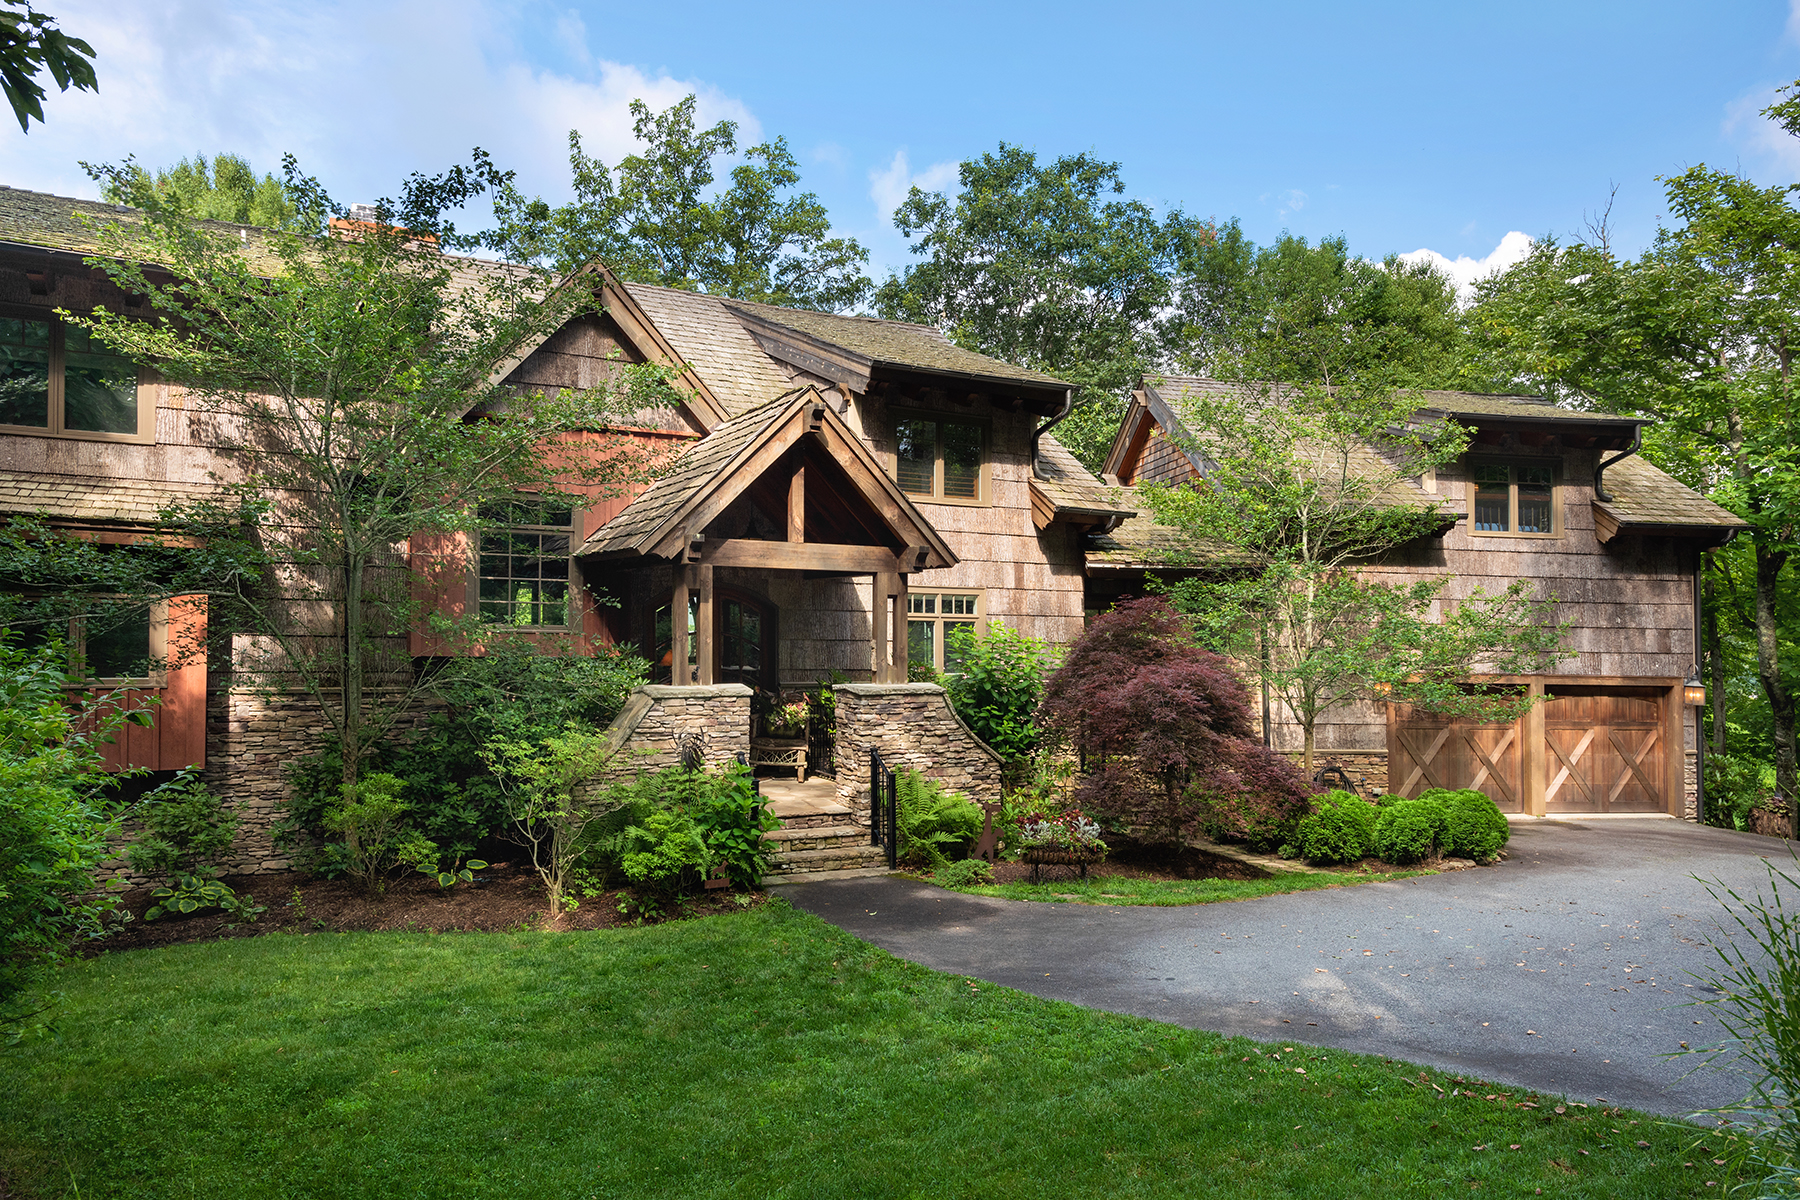 Single Family Homes for Active at FIRETHORN - BLOWIN ROCK 160 Tanglewood Trl Blowing Rock, North Carolina 28605 United States